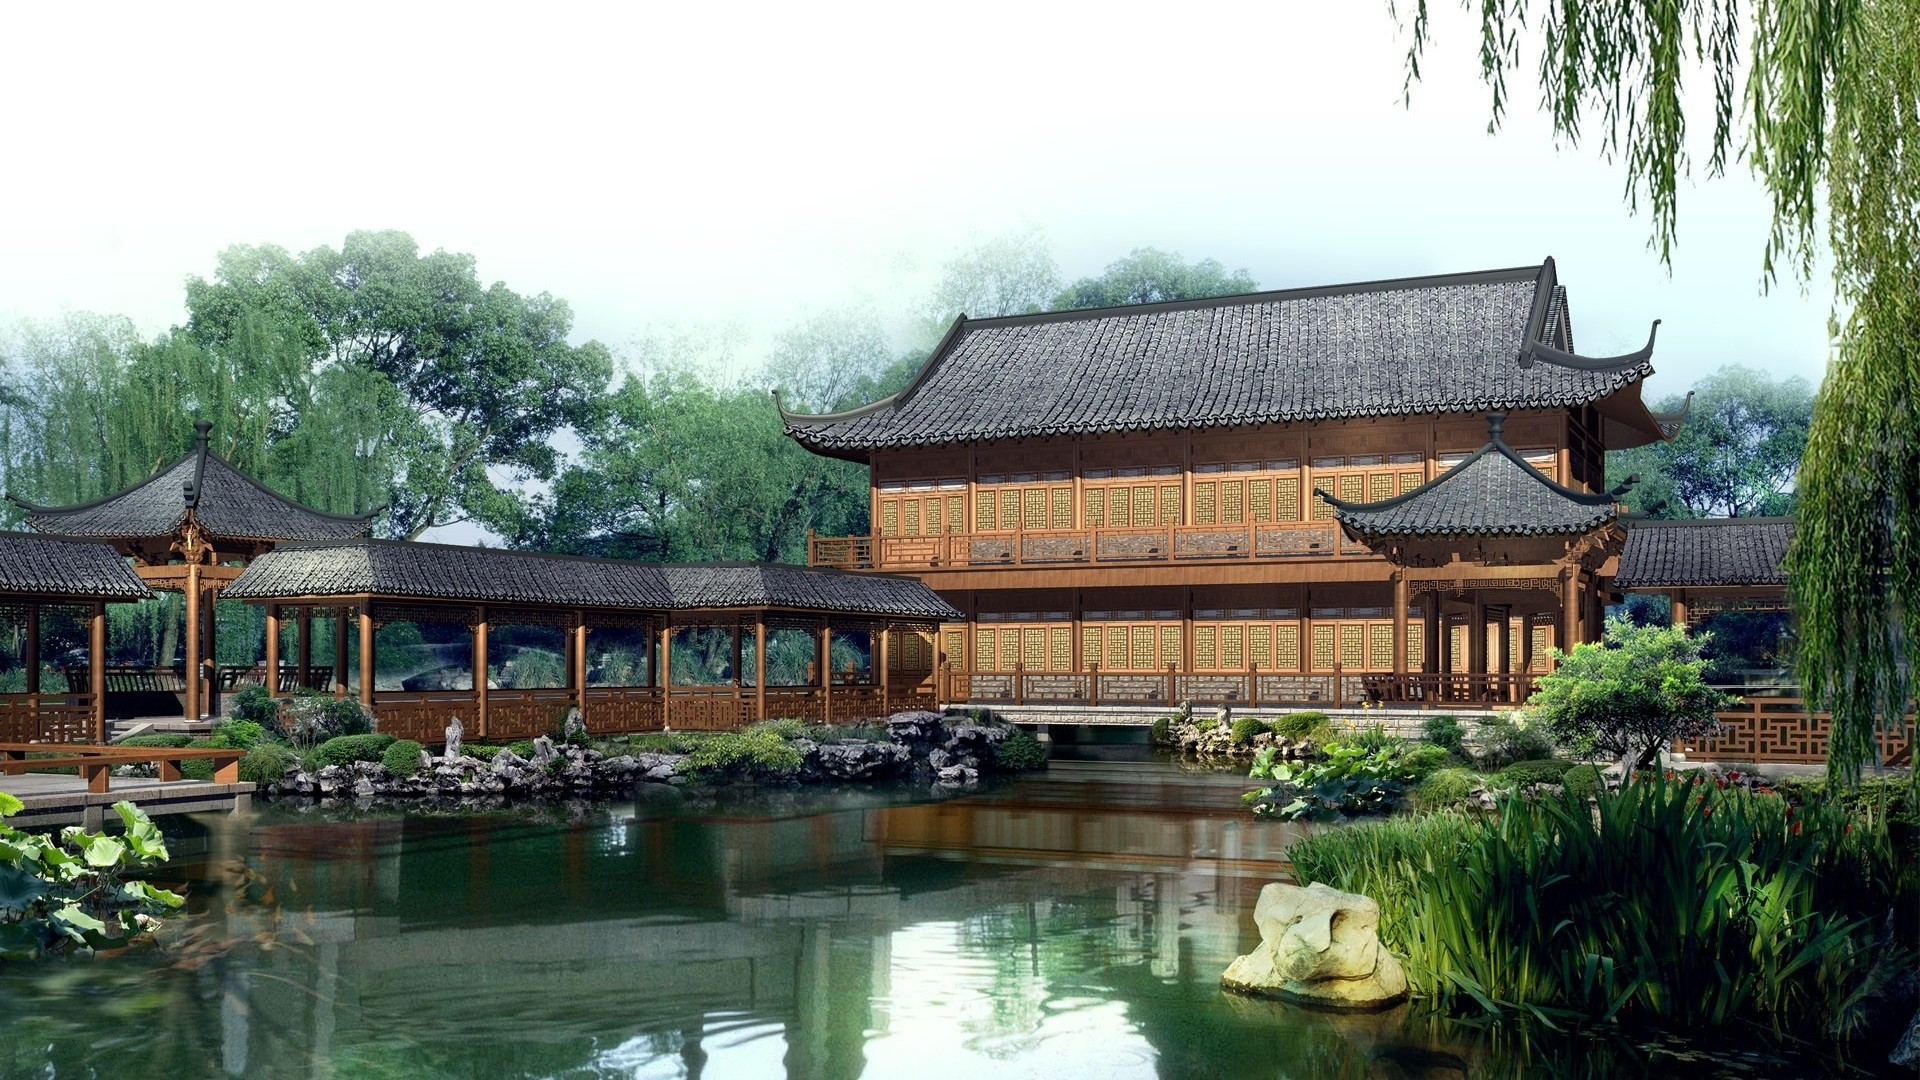 Preview wallpaper china, structures, lake, pond, garden, sky, style  1920×1080